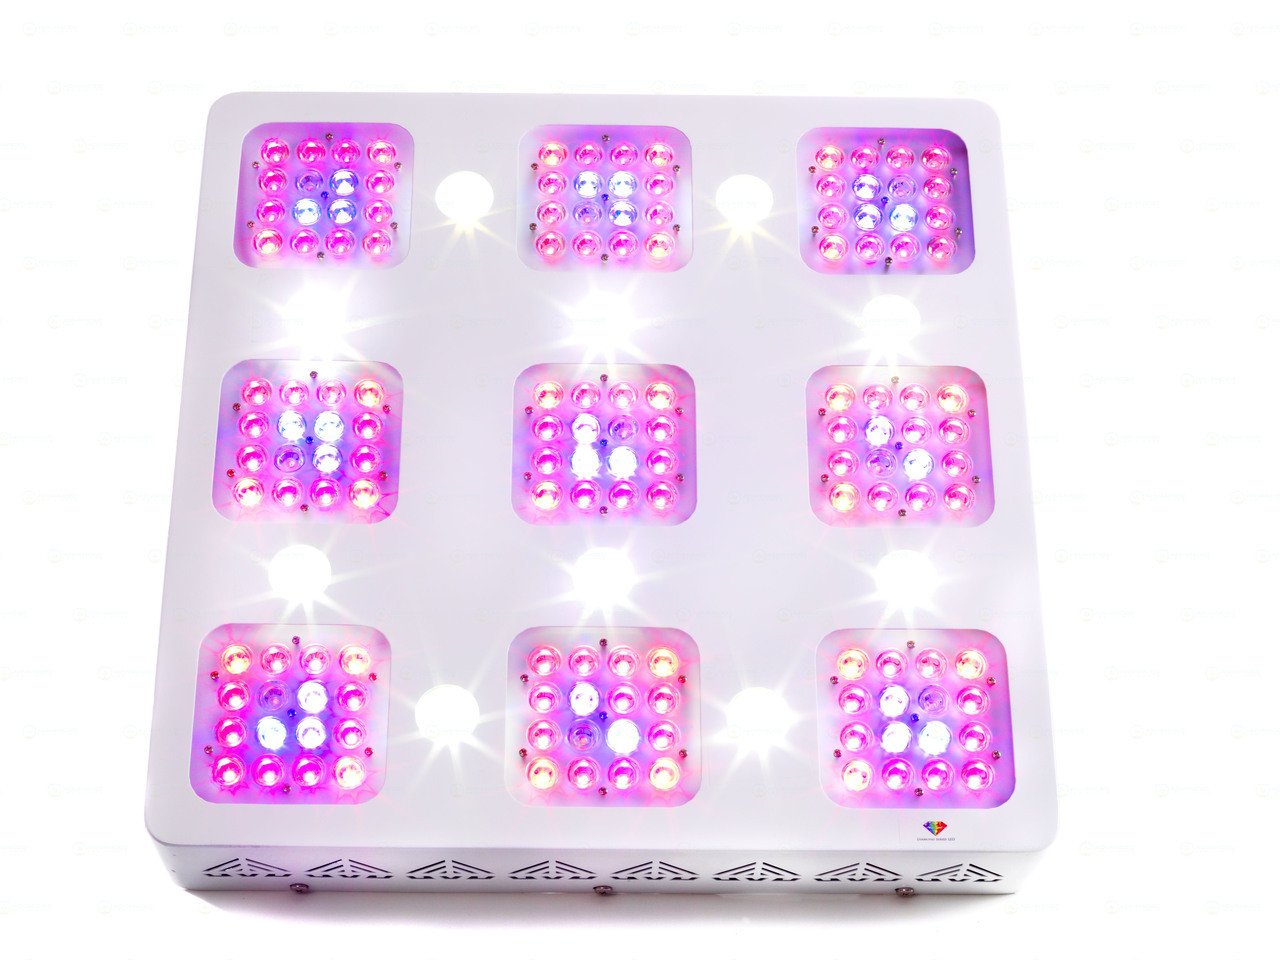 Advanced LED Lights - Full Spectrum LED Grow Light for Indoor Plants Vegs and Flowers - Diamond Series XML 350 With 10W CREE XML LEDs